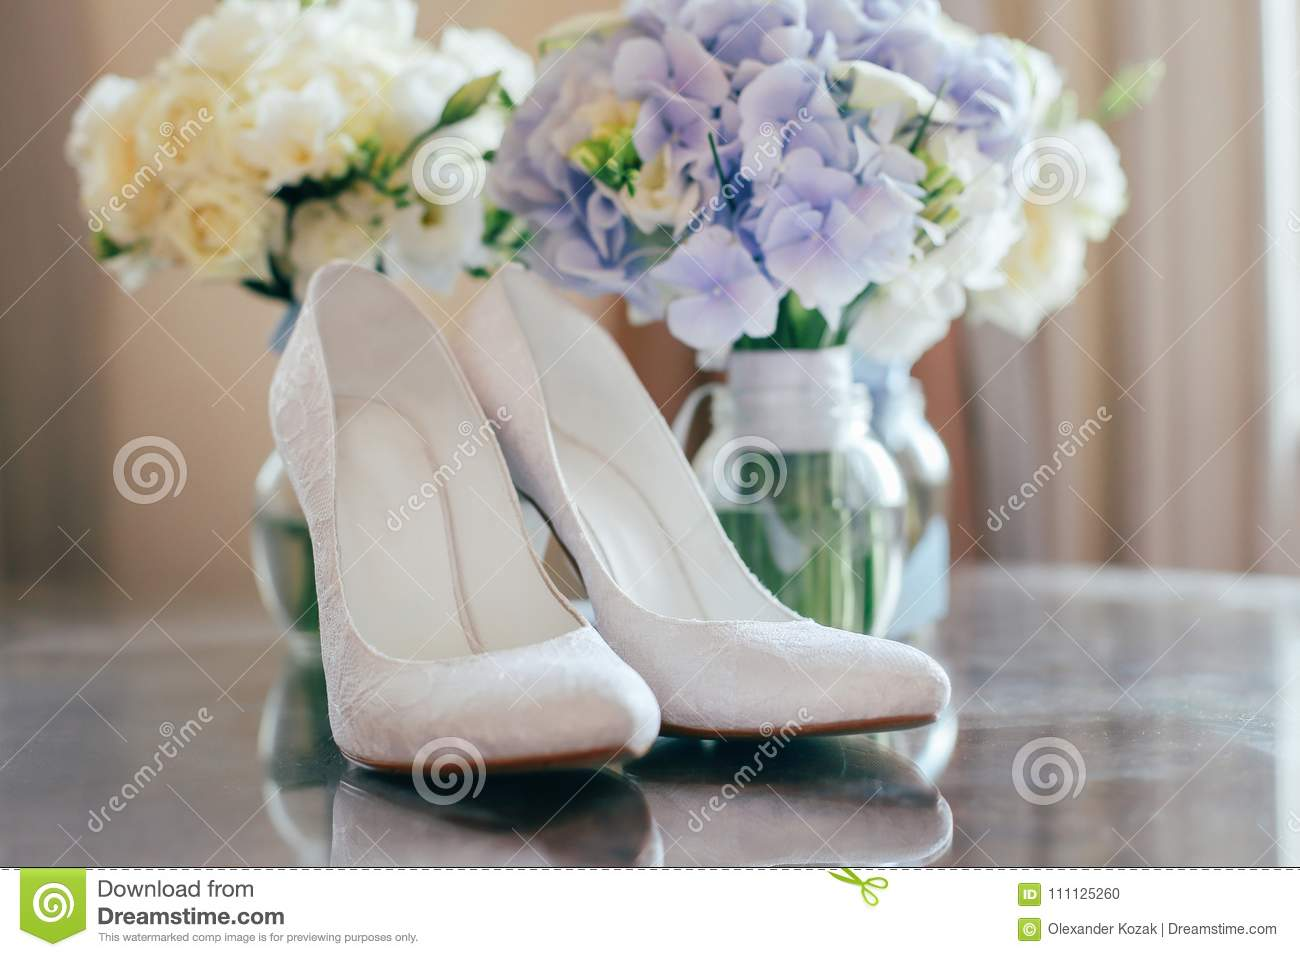 Wedding bouquet, rings and shoes